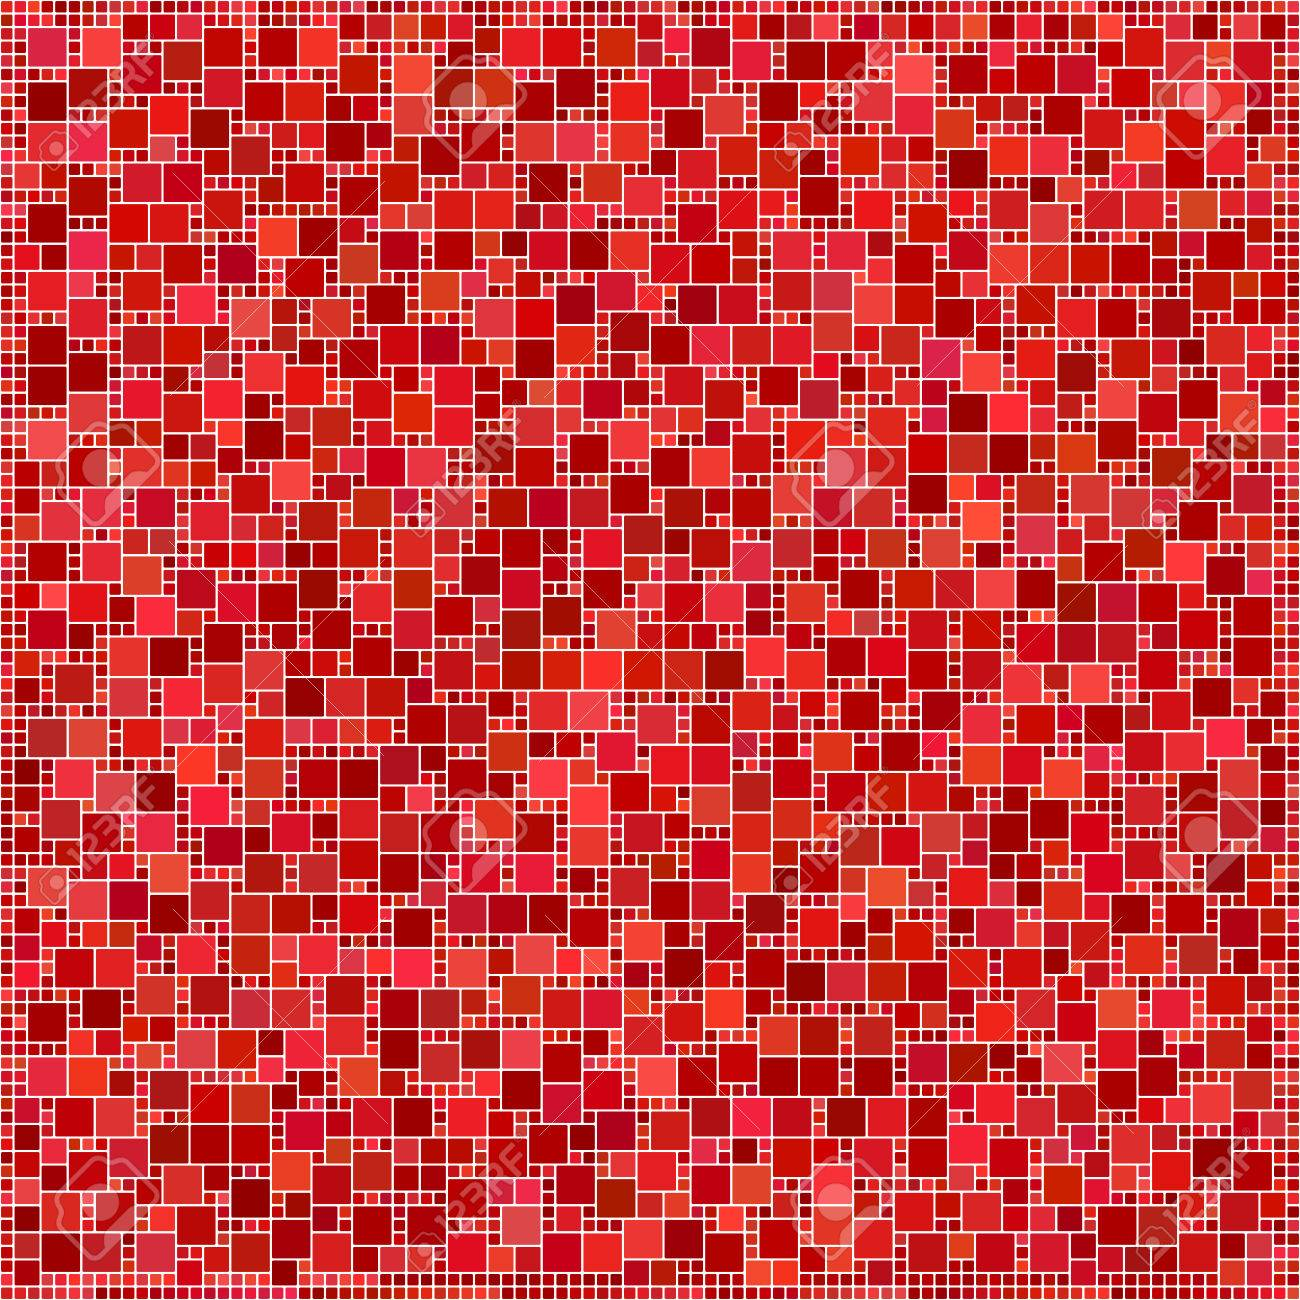 Red Color Abstract Square Mosaic Pattern Background